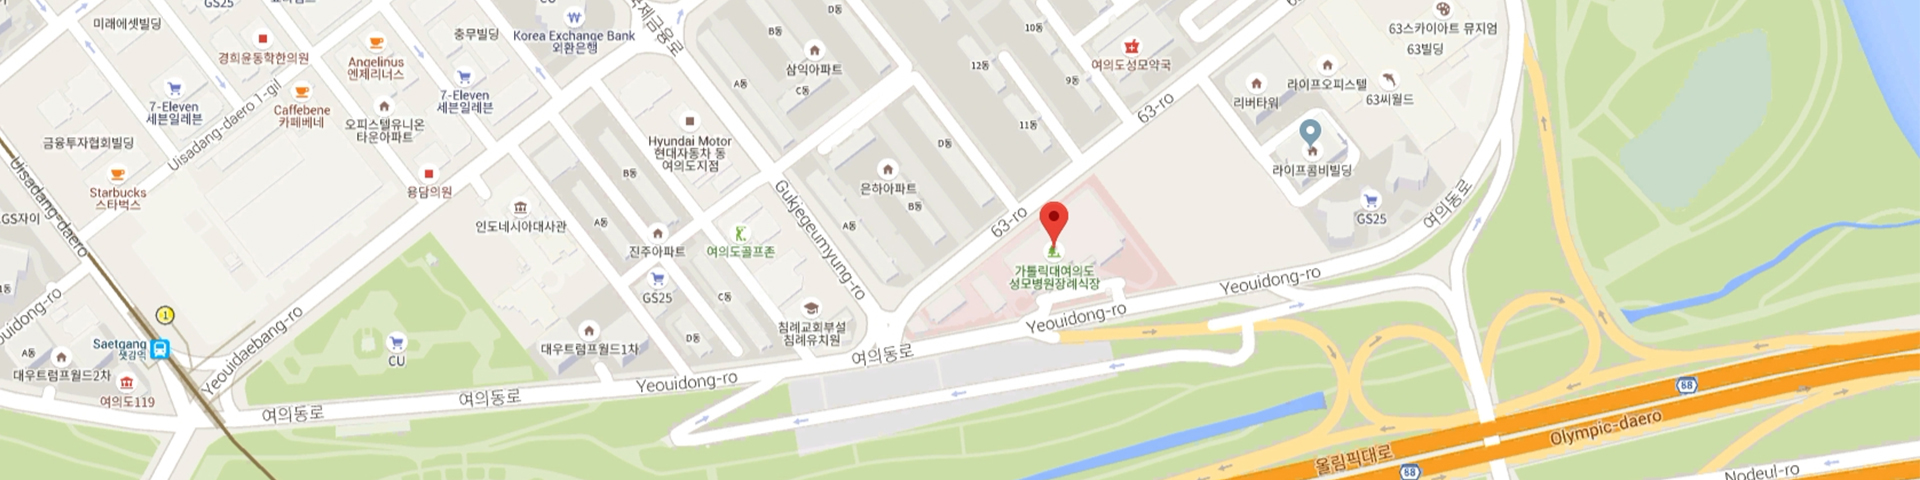 How to find us > About Us > The Catholic University of Korea Yeouido Catholic University Map on